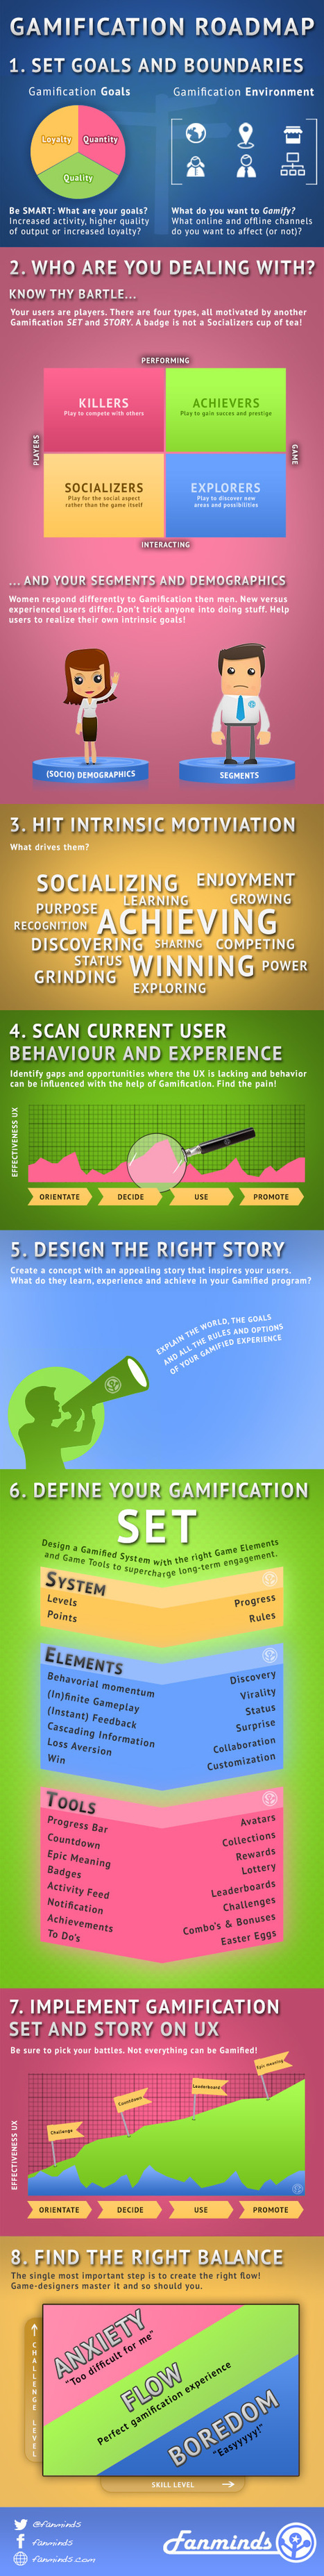 """Infographie : """"Gamification Roadmap""""   ENT   Scoop.it"""